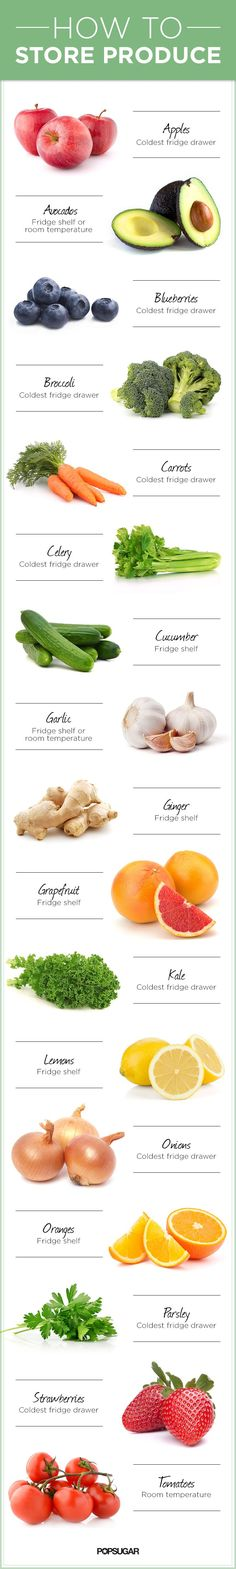 How to store produce #infographic